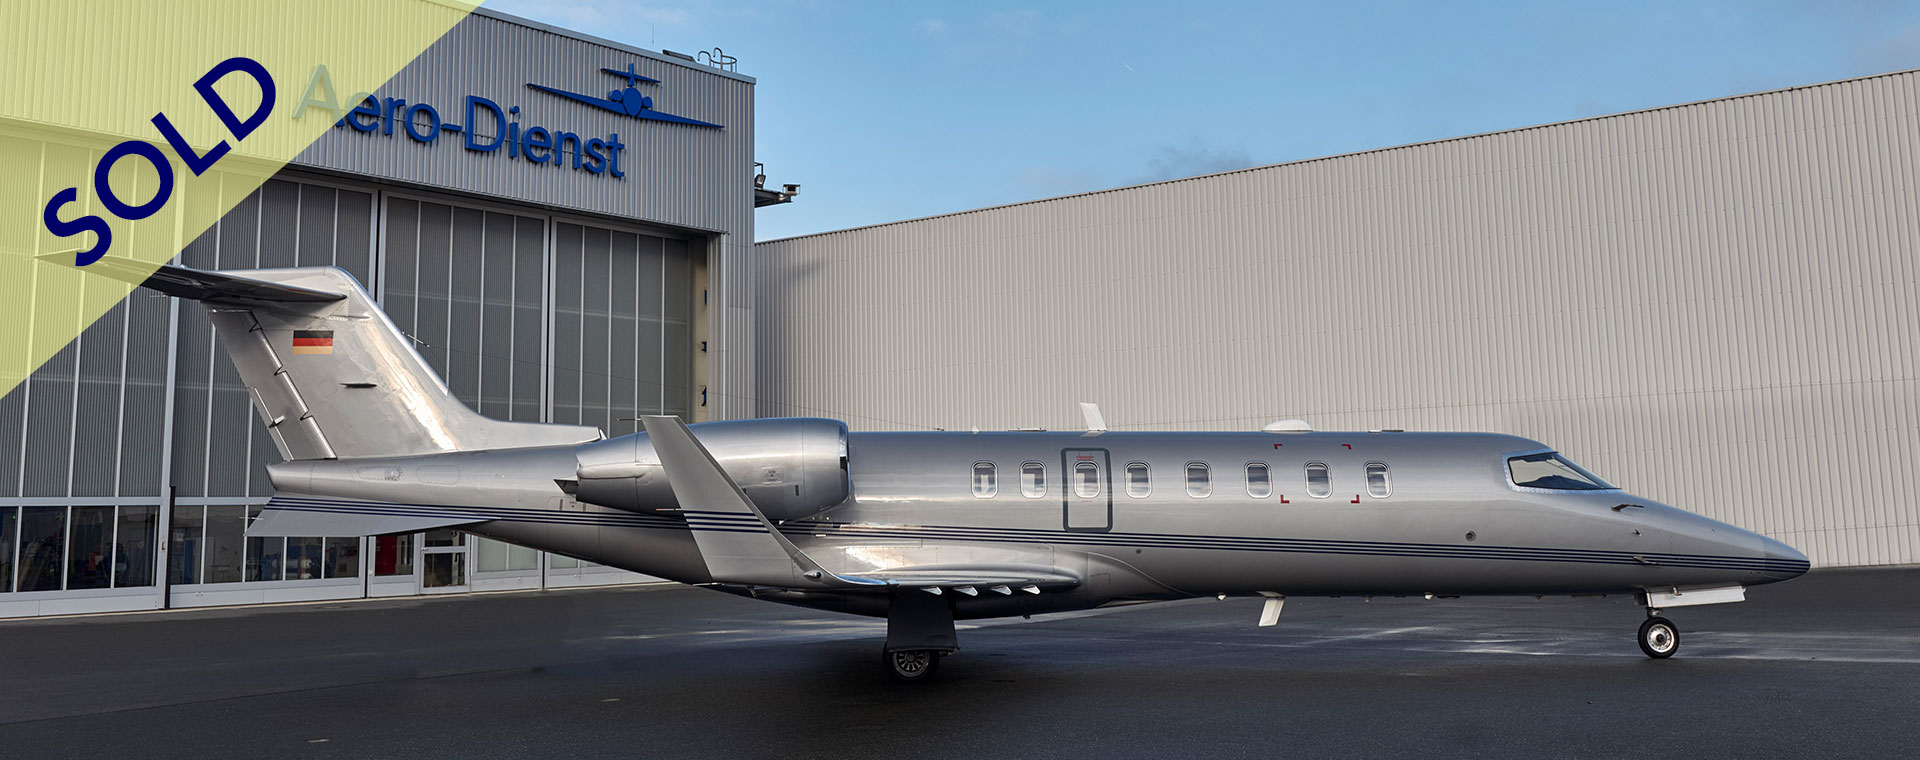 Learjet 45 SOLD - Aero-Dienst - Aircraft Sales